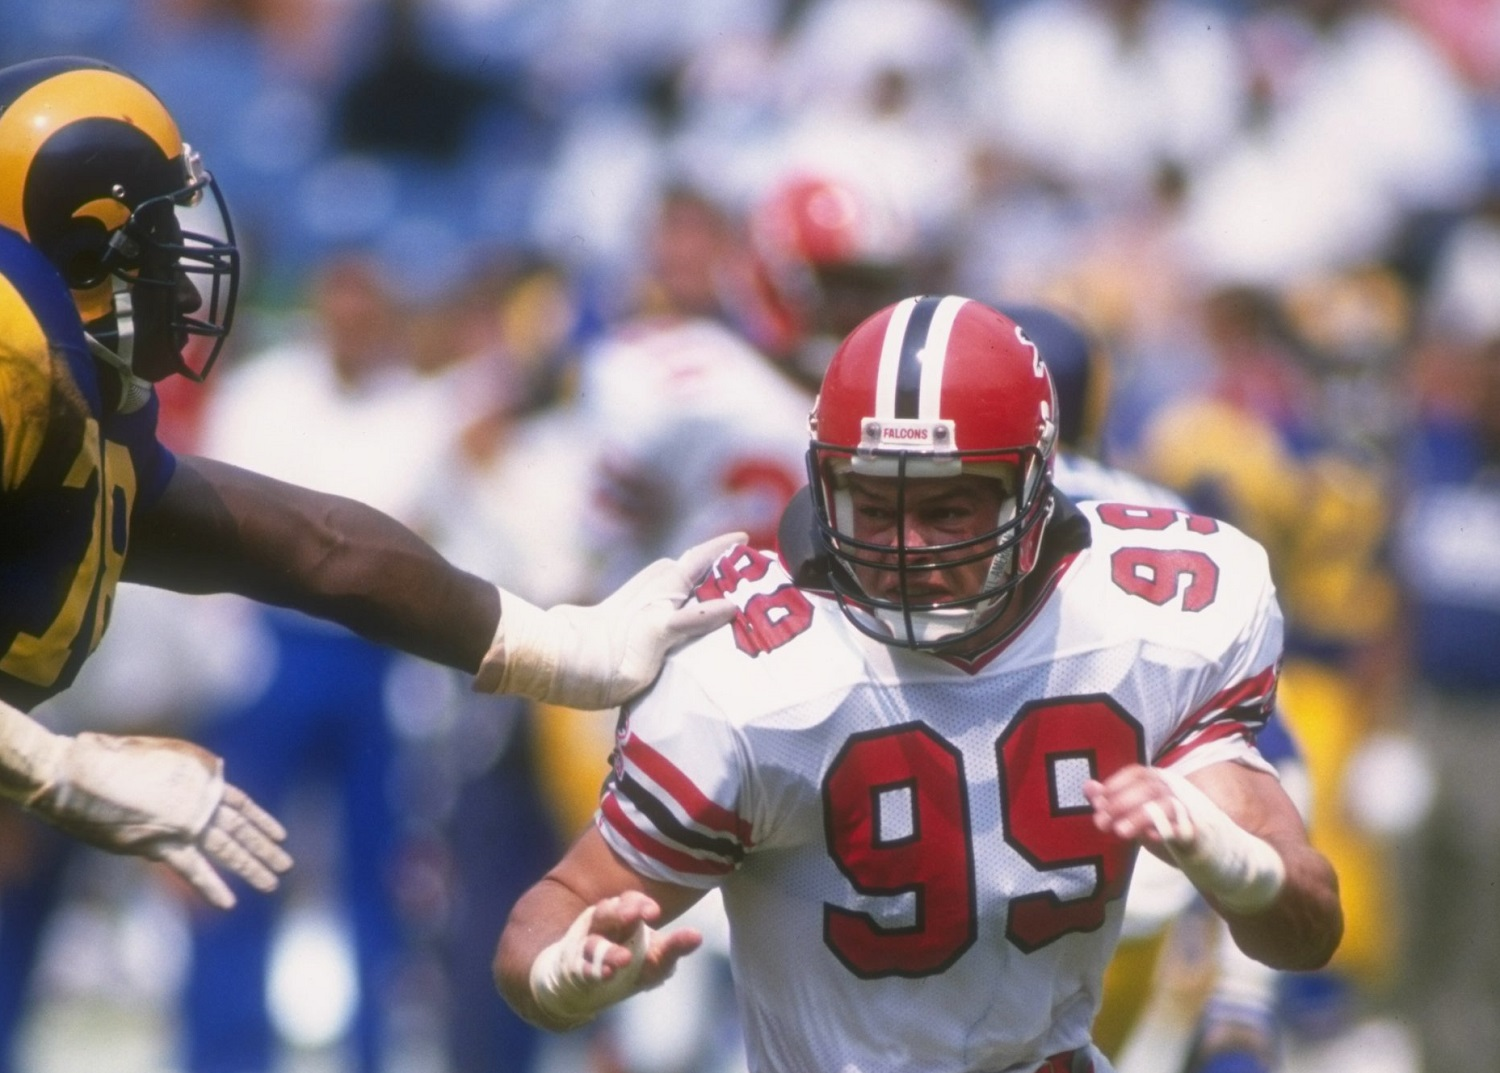 Ex-Atlanta Falcons Defender Tim Green Has ALS and Is Under Attack in His Own Hometown